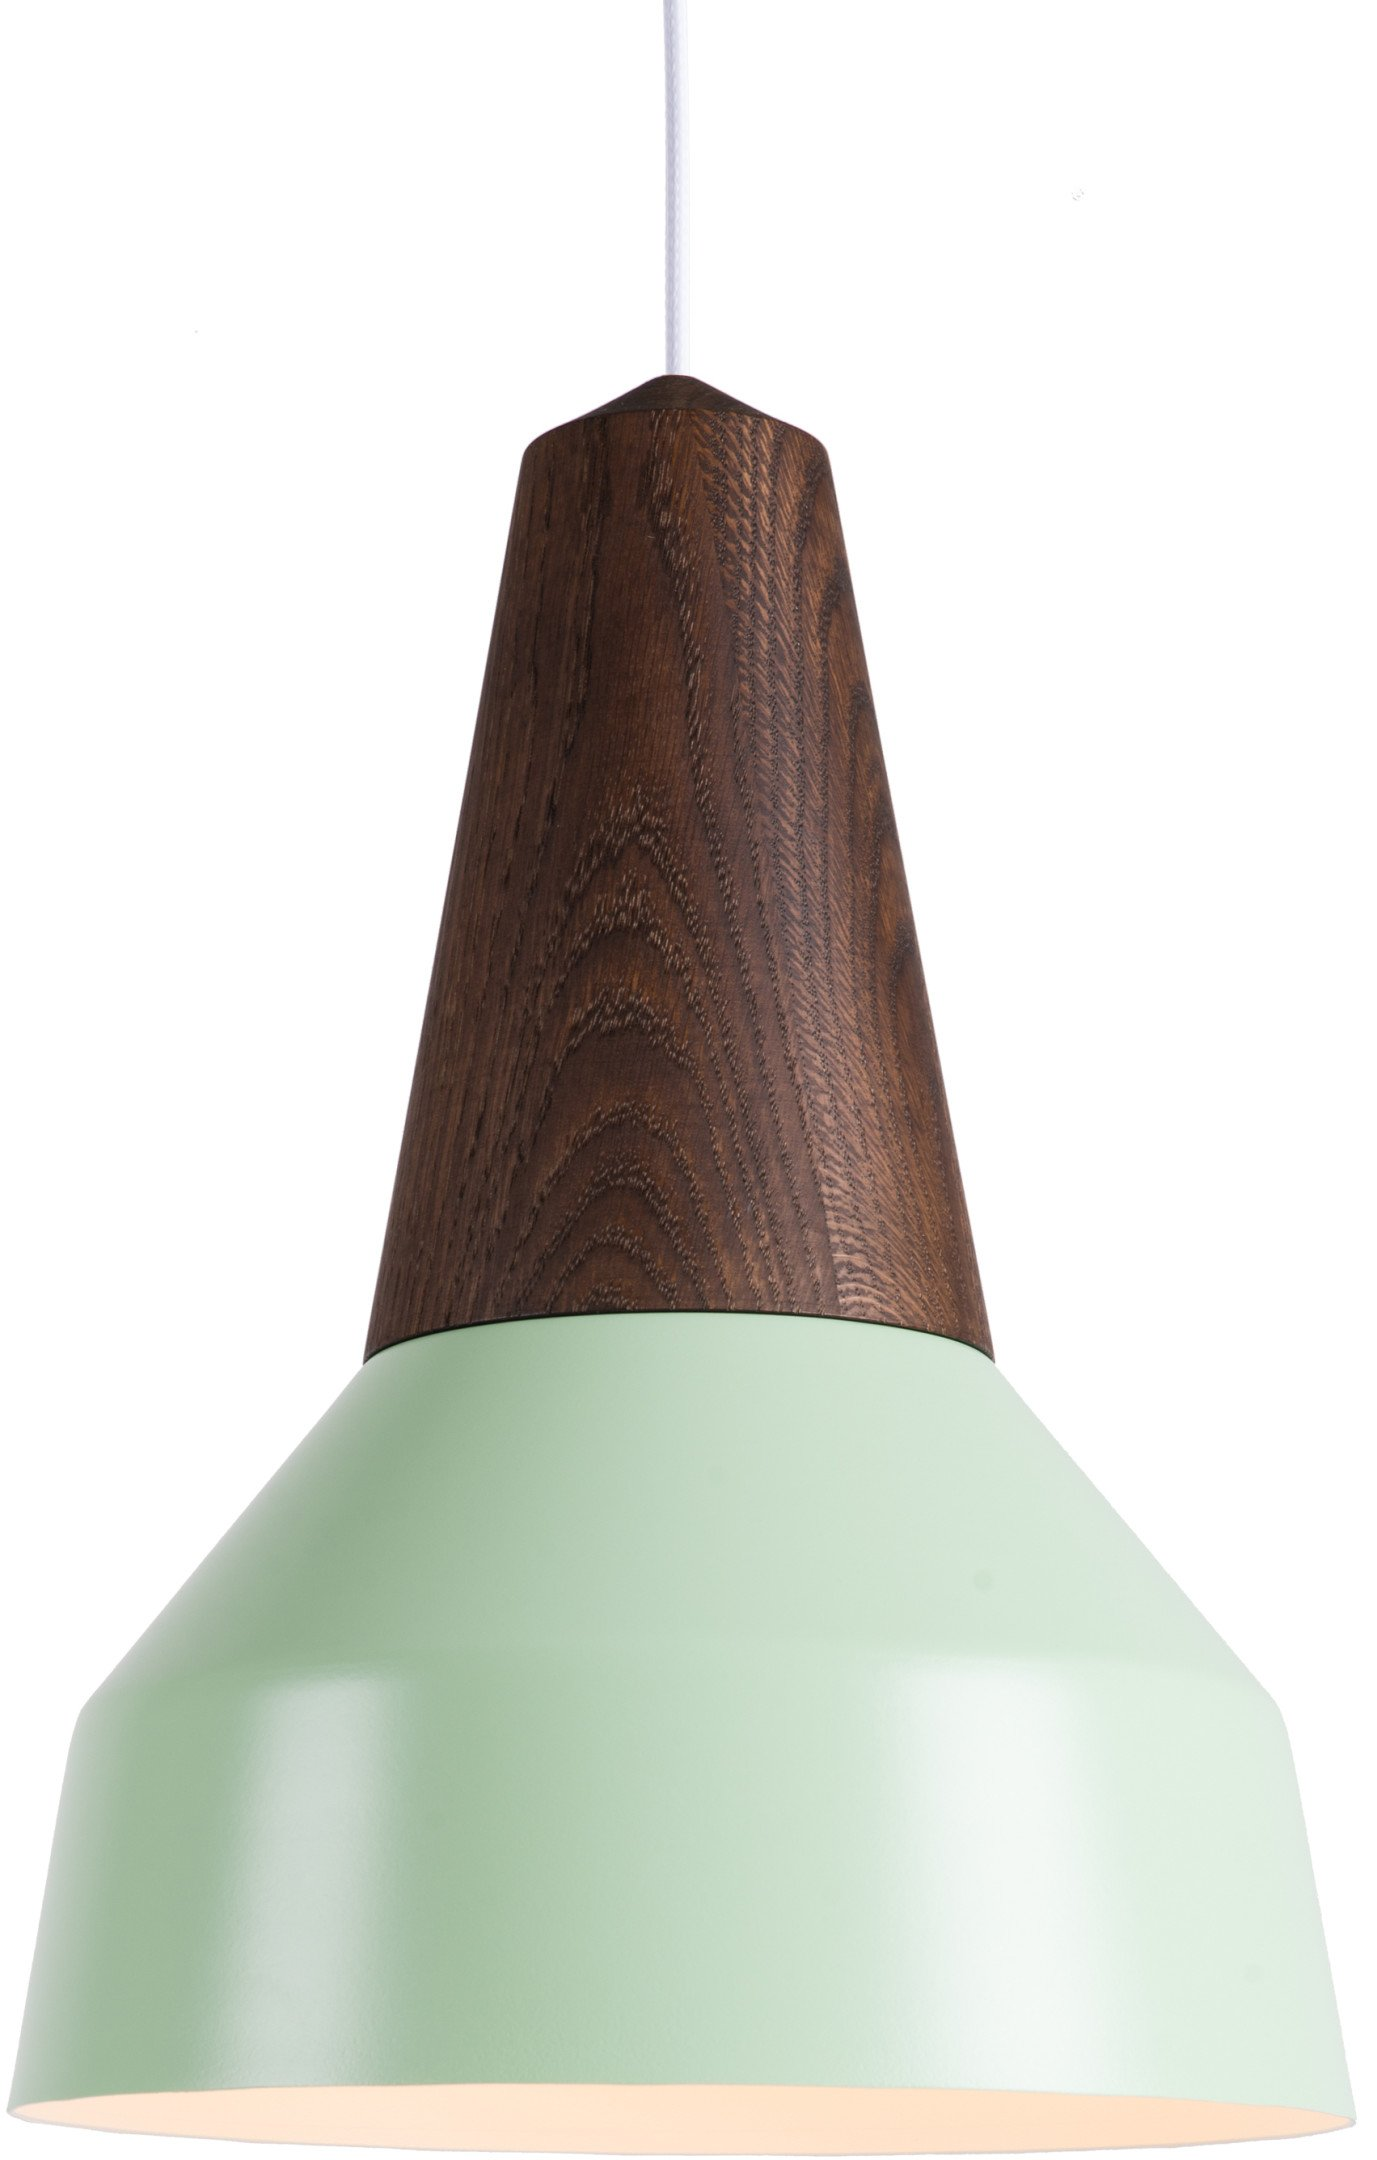 Eikon Basic Pendant Lamp Mint Smoked Oak by J. Jessen, N. Jessen for Schneid, Germany